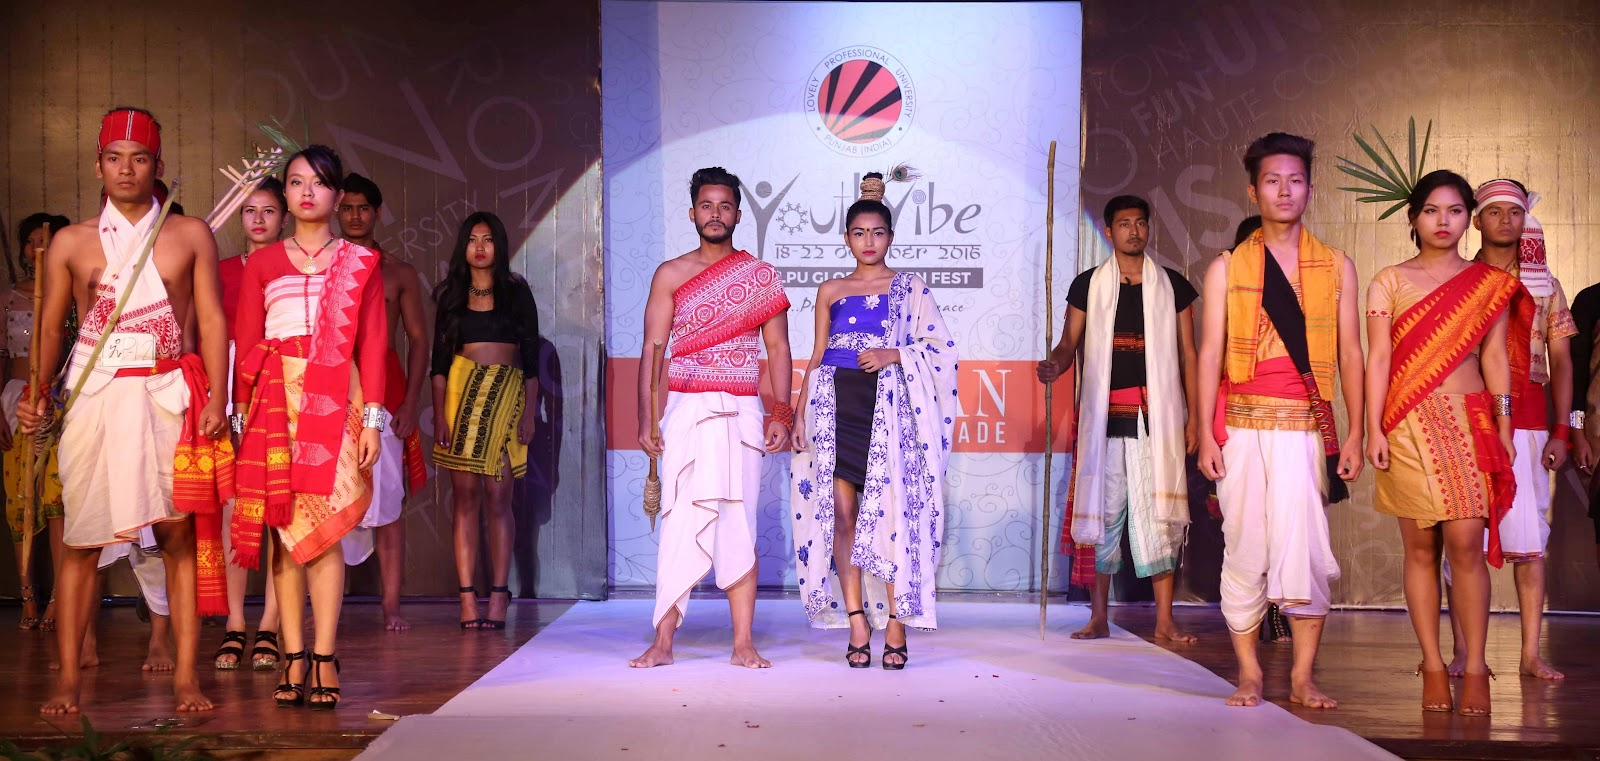 Students participating in a Paridhan Fashion Show competition during concluding day of Youth Vibe fest at LPU (3).JPG